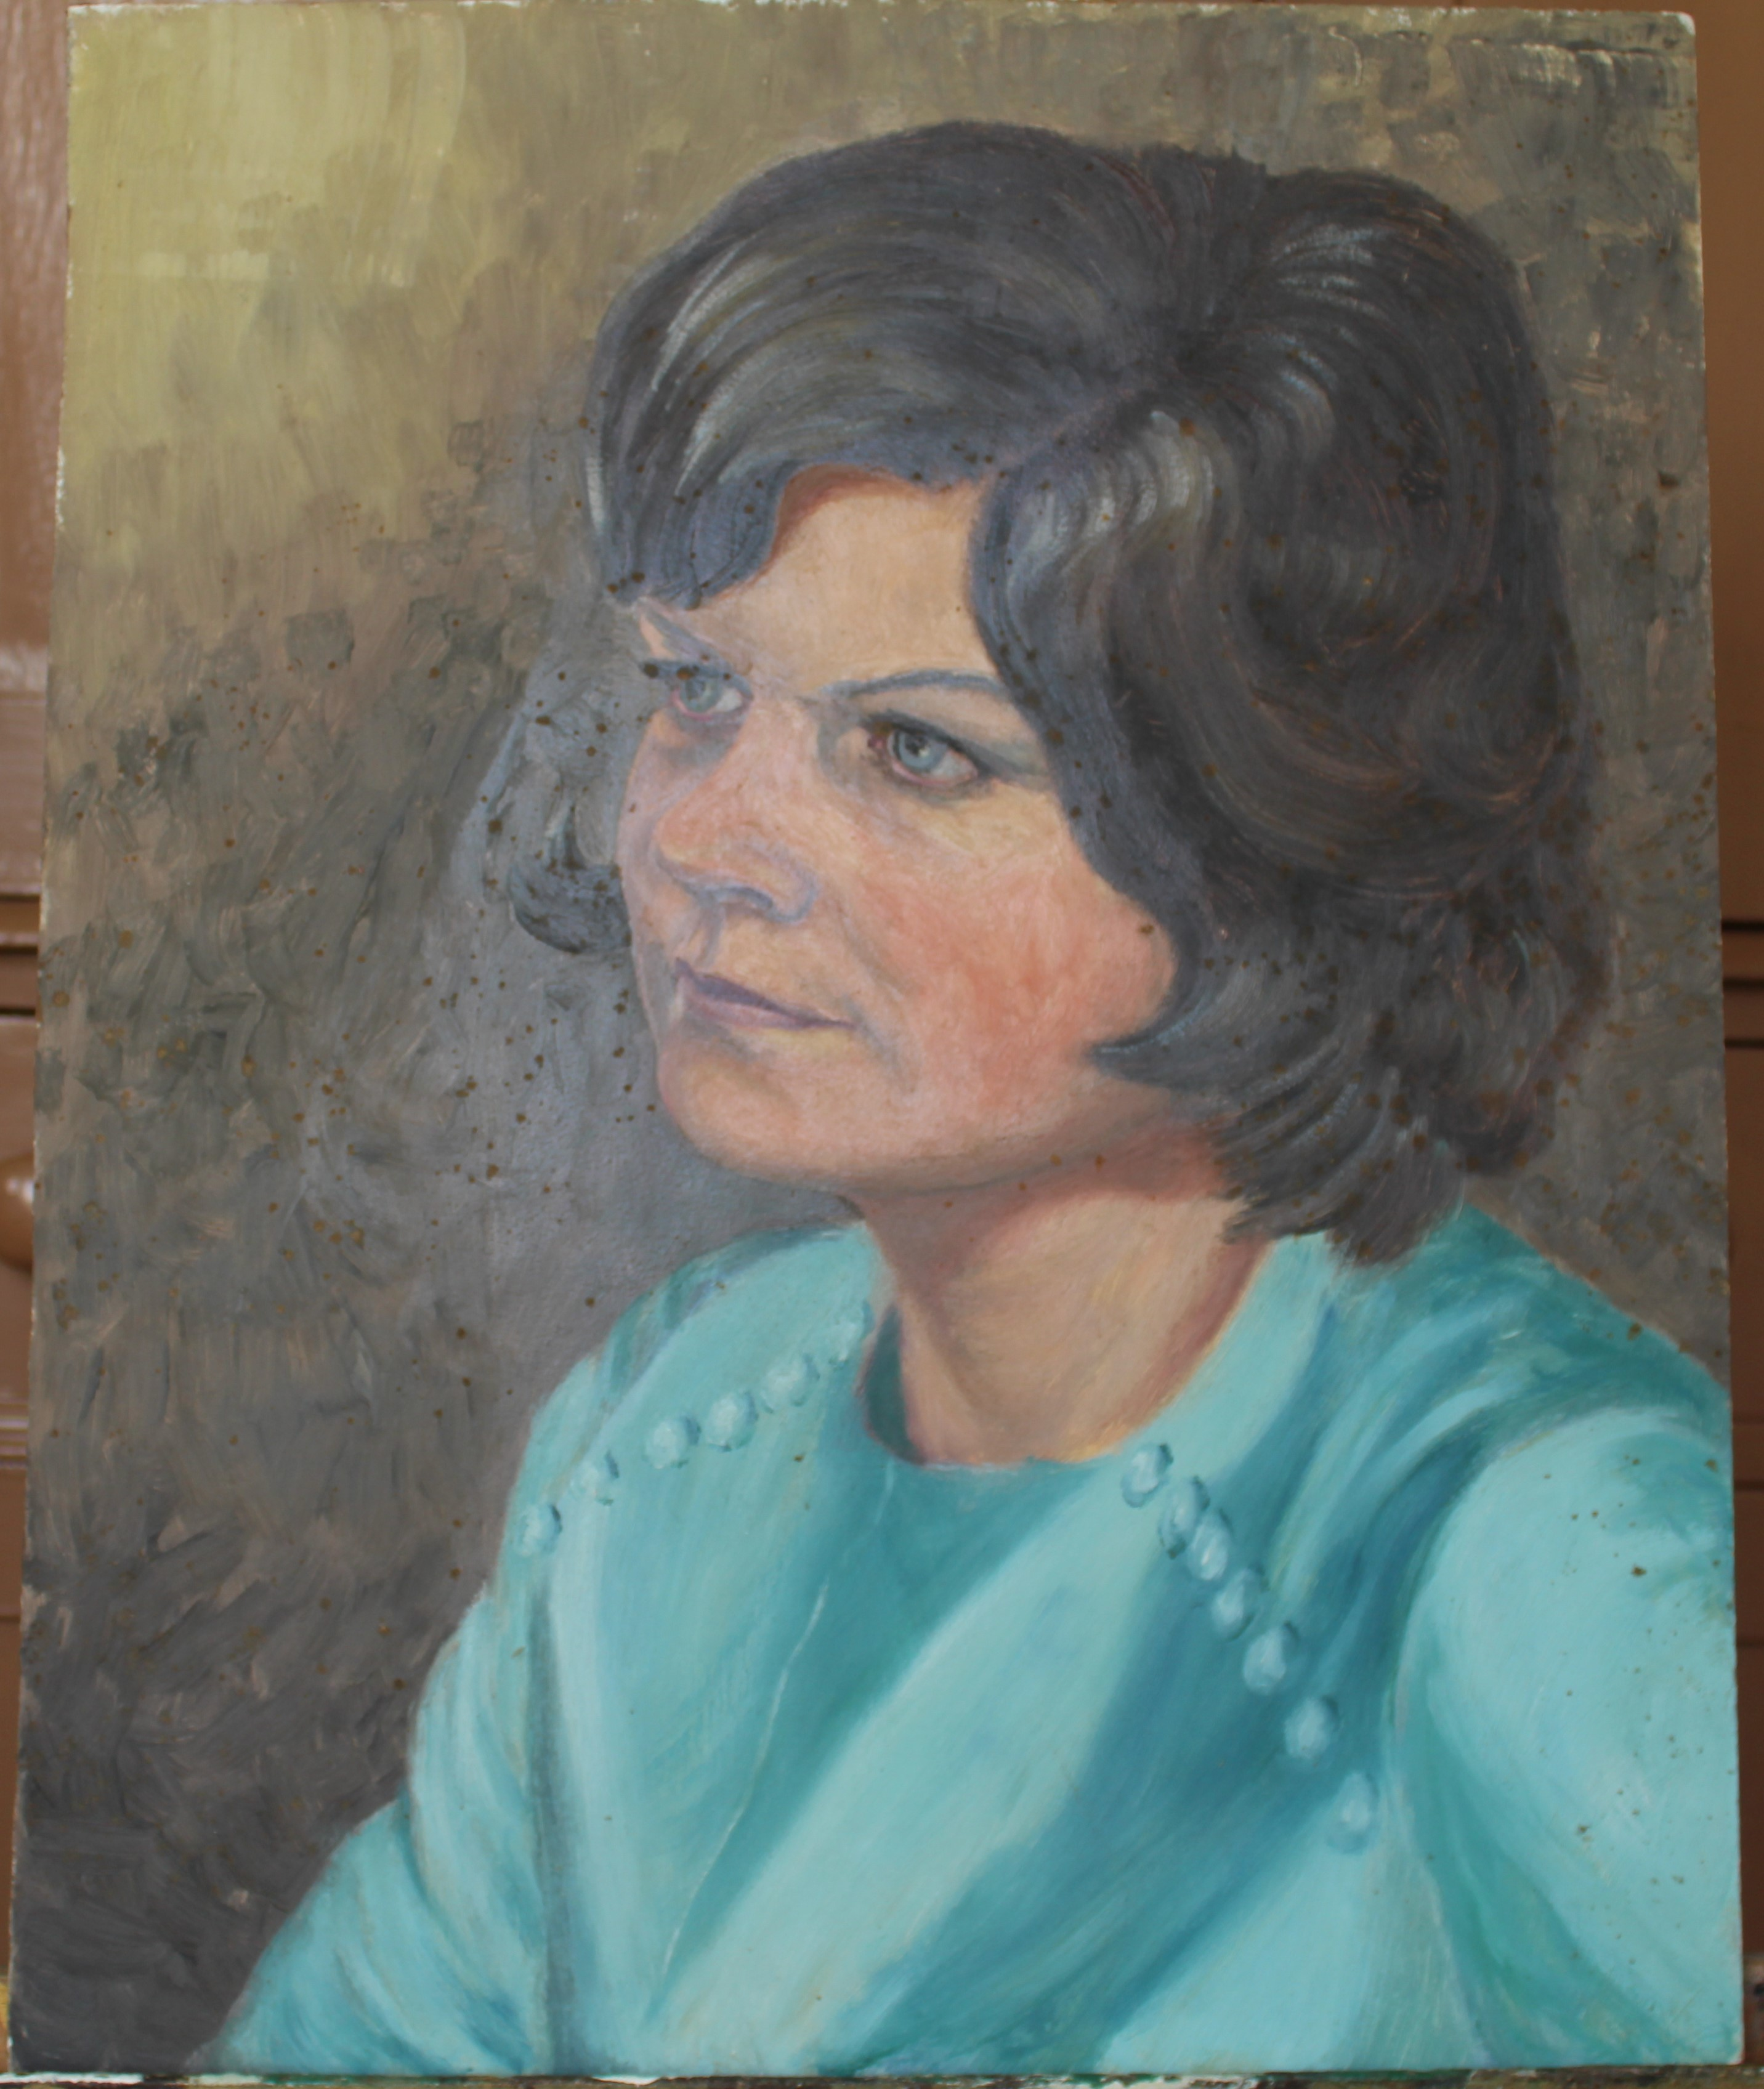 •PORTRAIT OF A WOMAN WEARING A BLUE TOP Unsigned unframed oil on board, 50 x 40.5cm and a collection